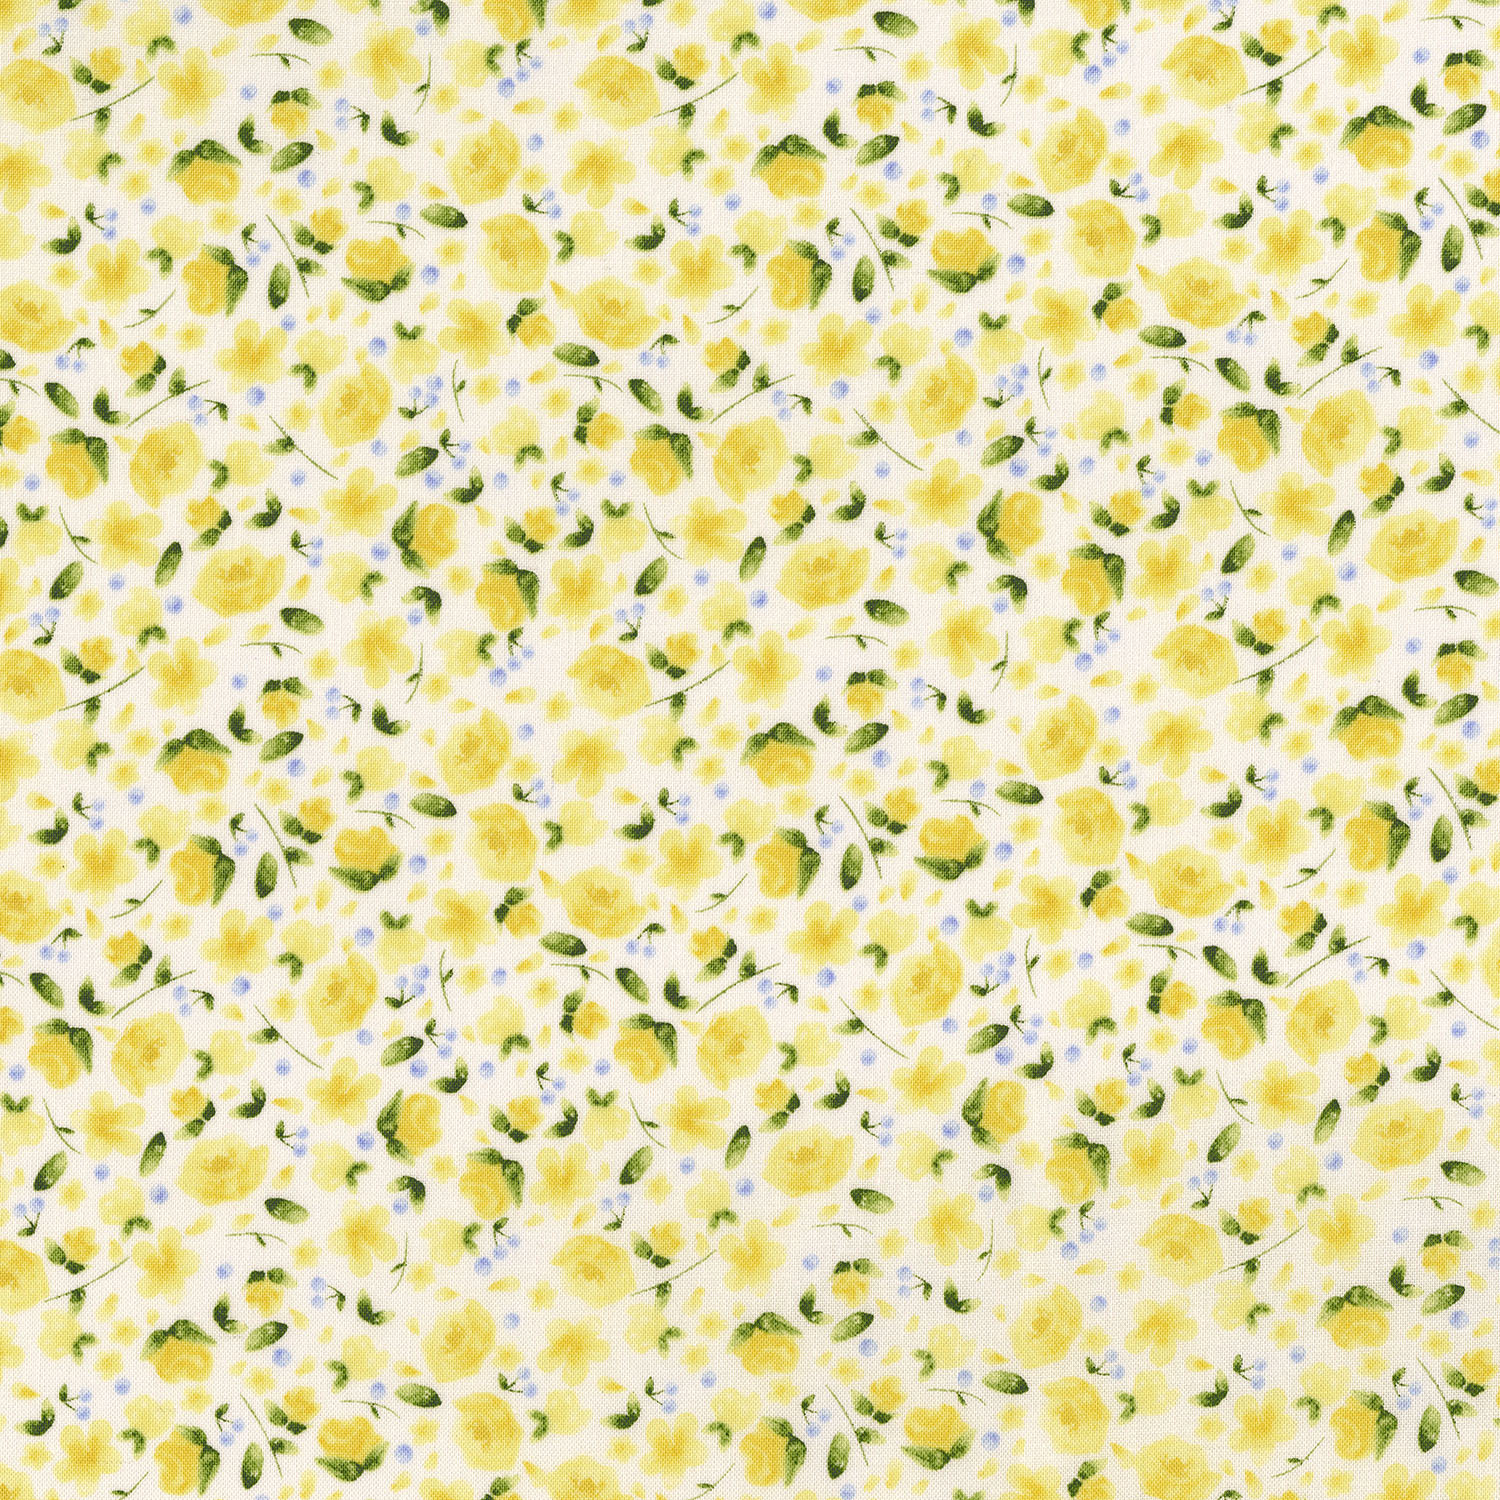 3296-003 FORGET-ME-NOT-CREAM AND SUGAR